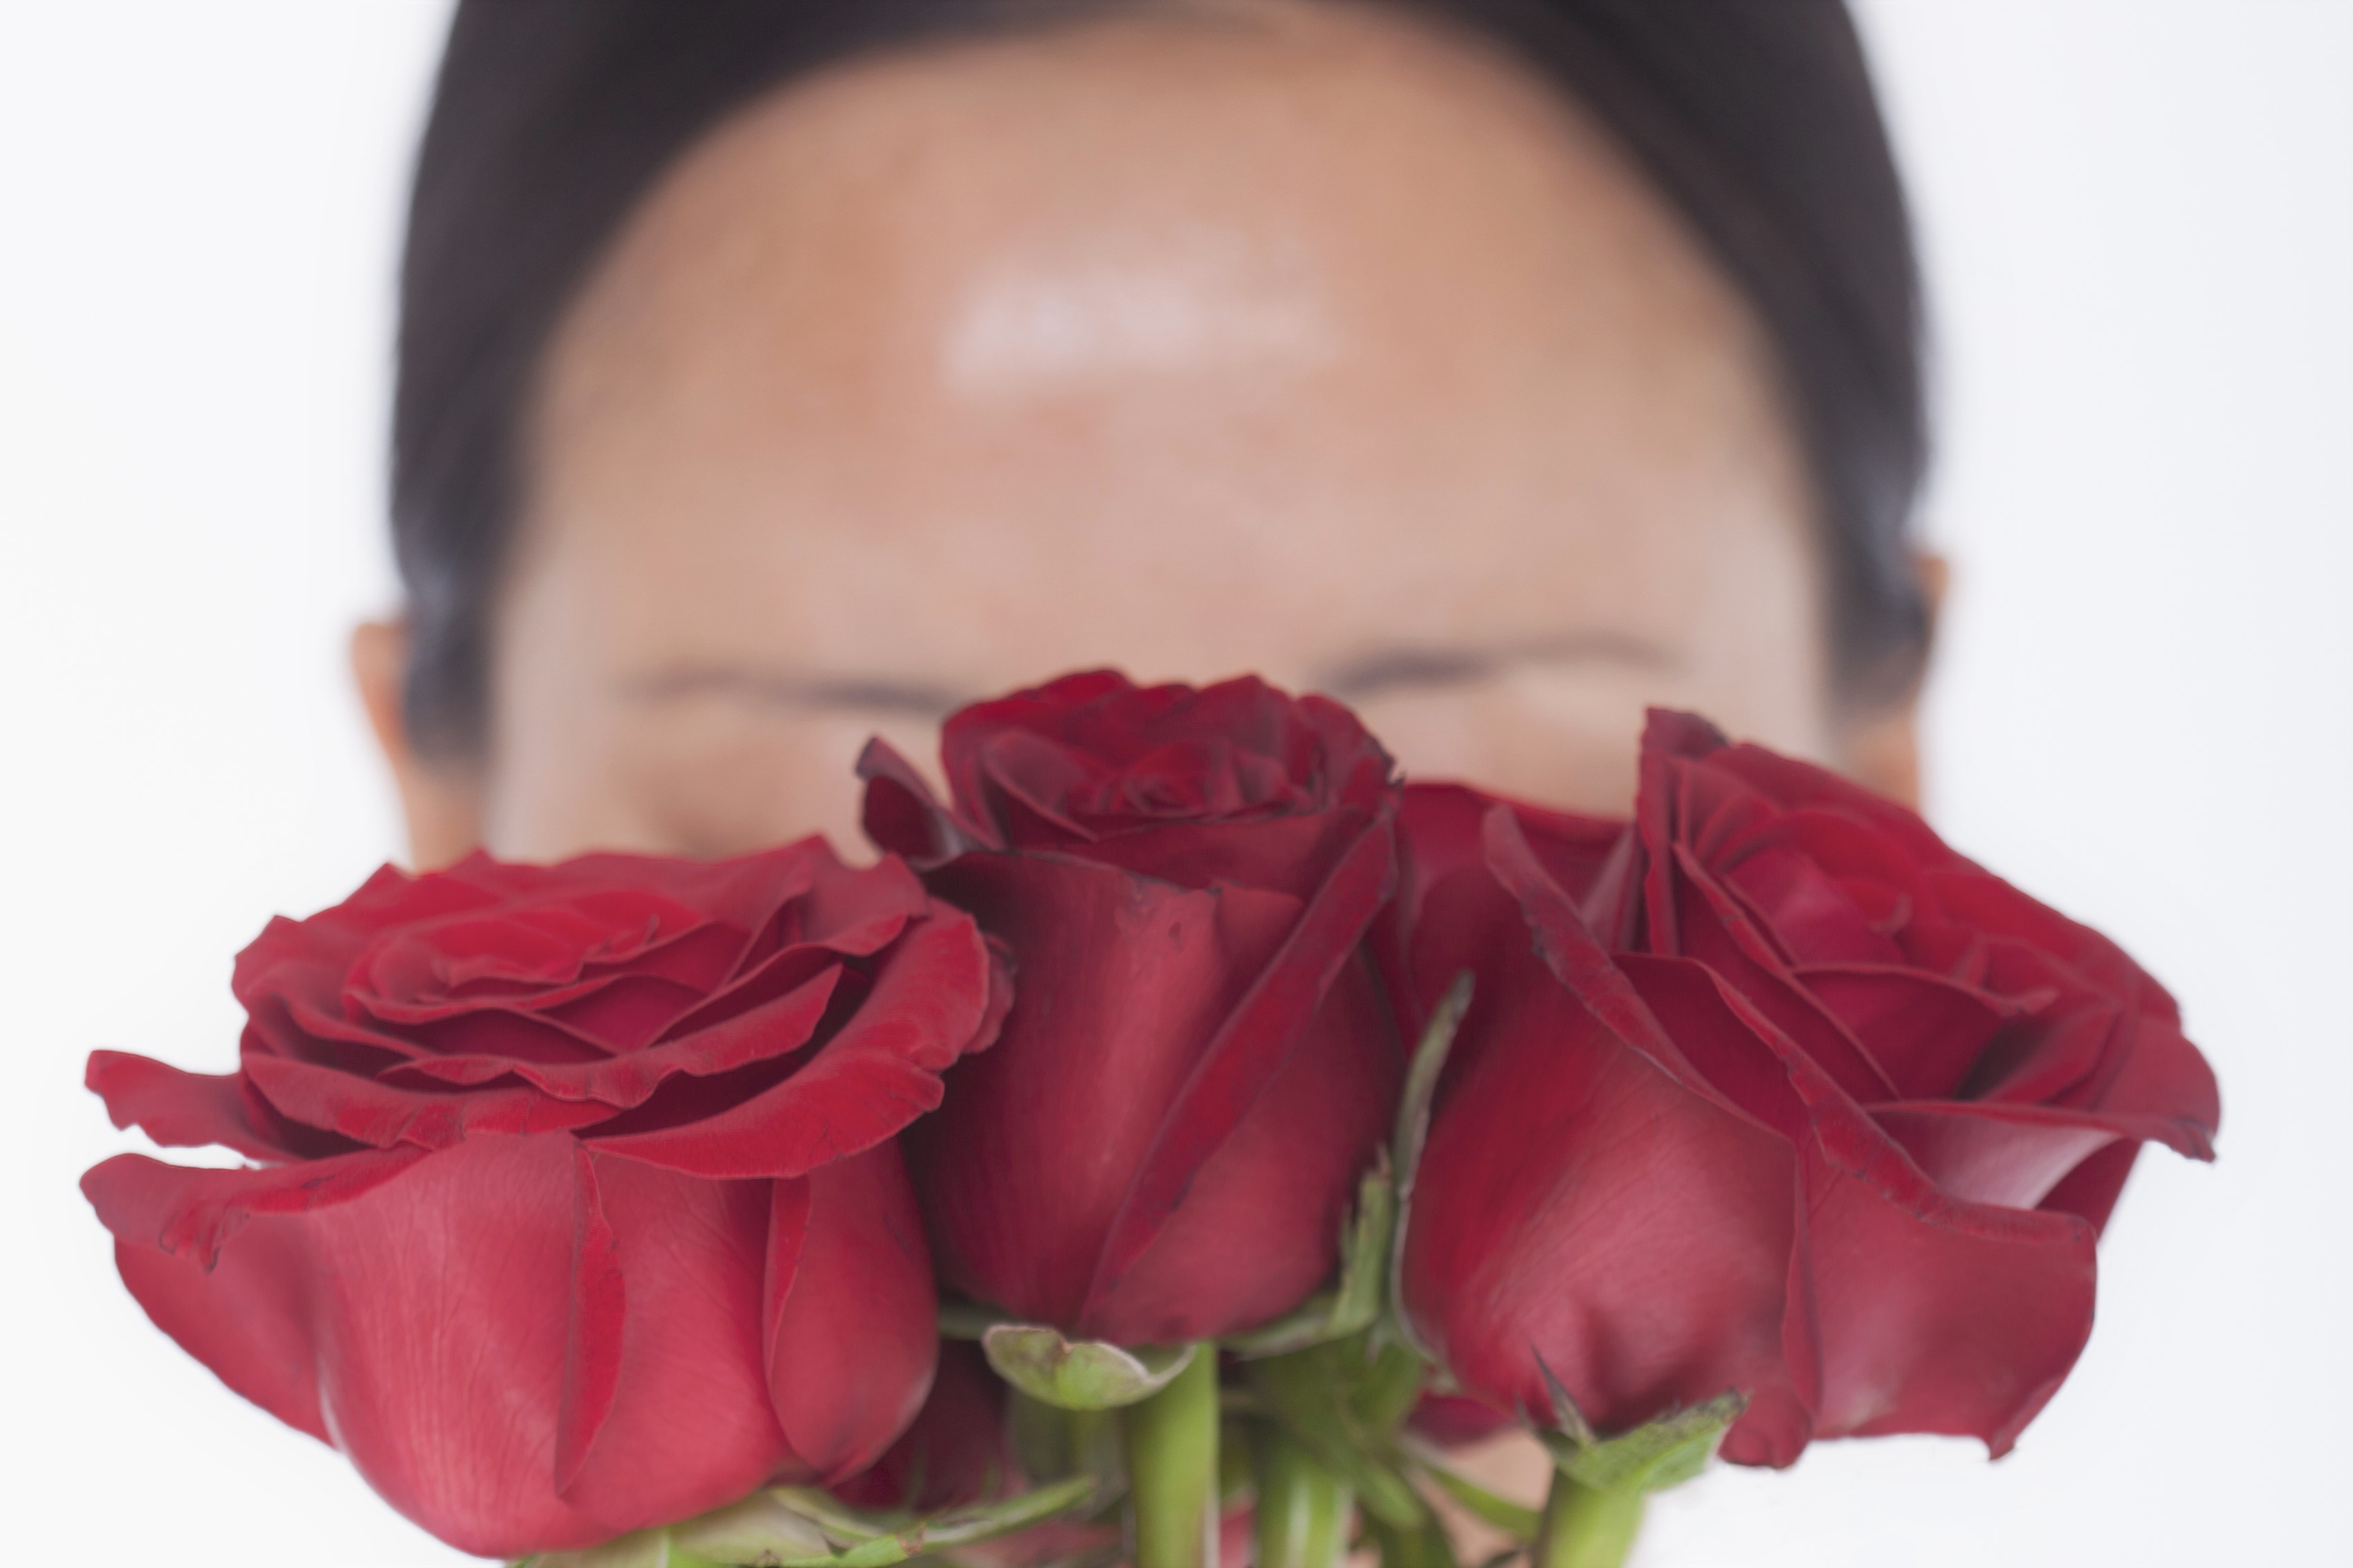 woman hiding face behind red roses